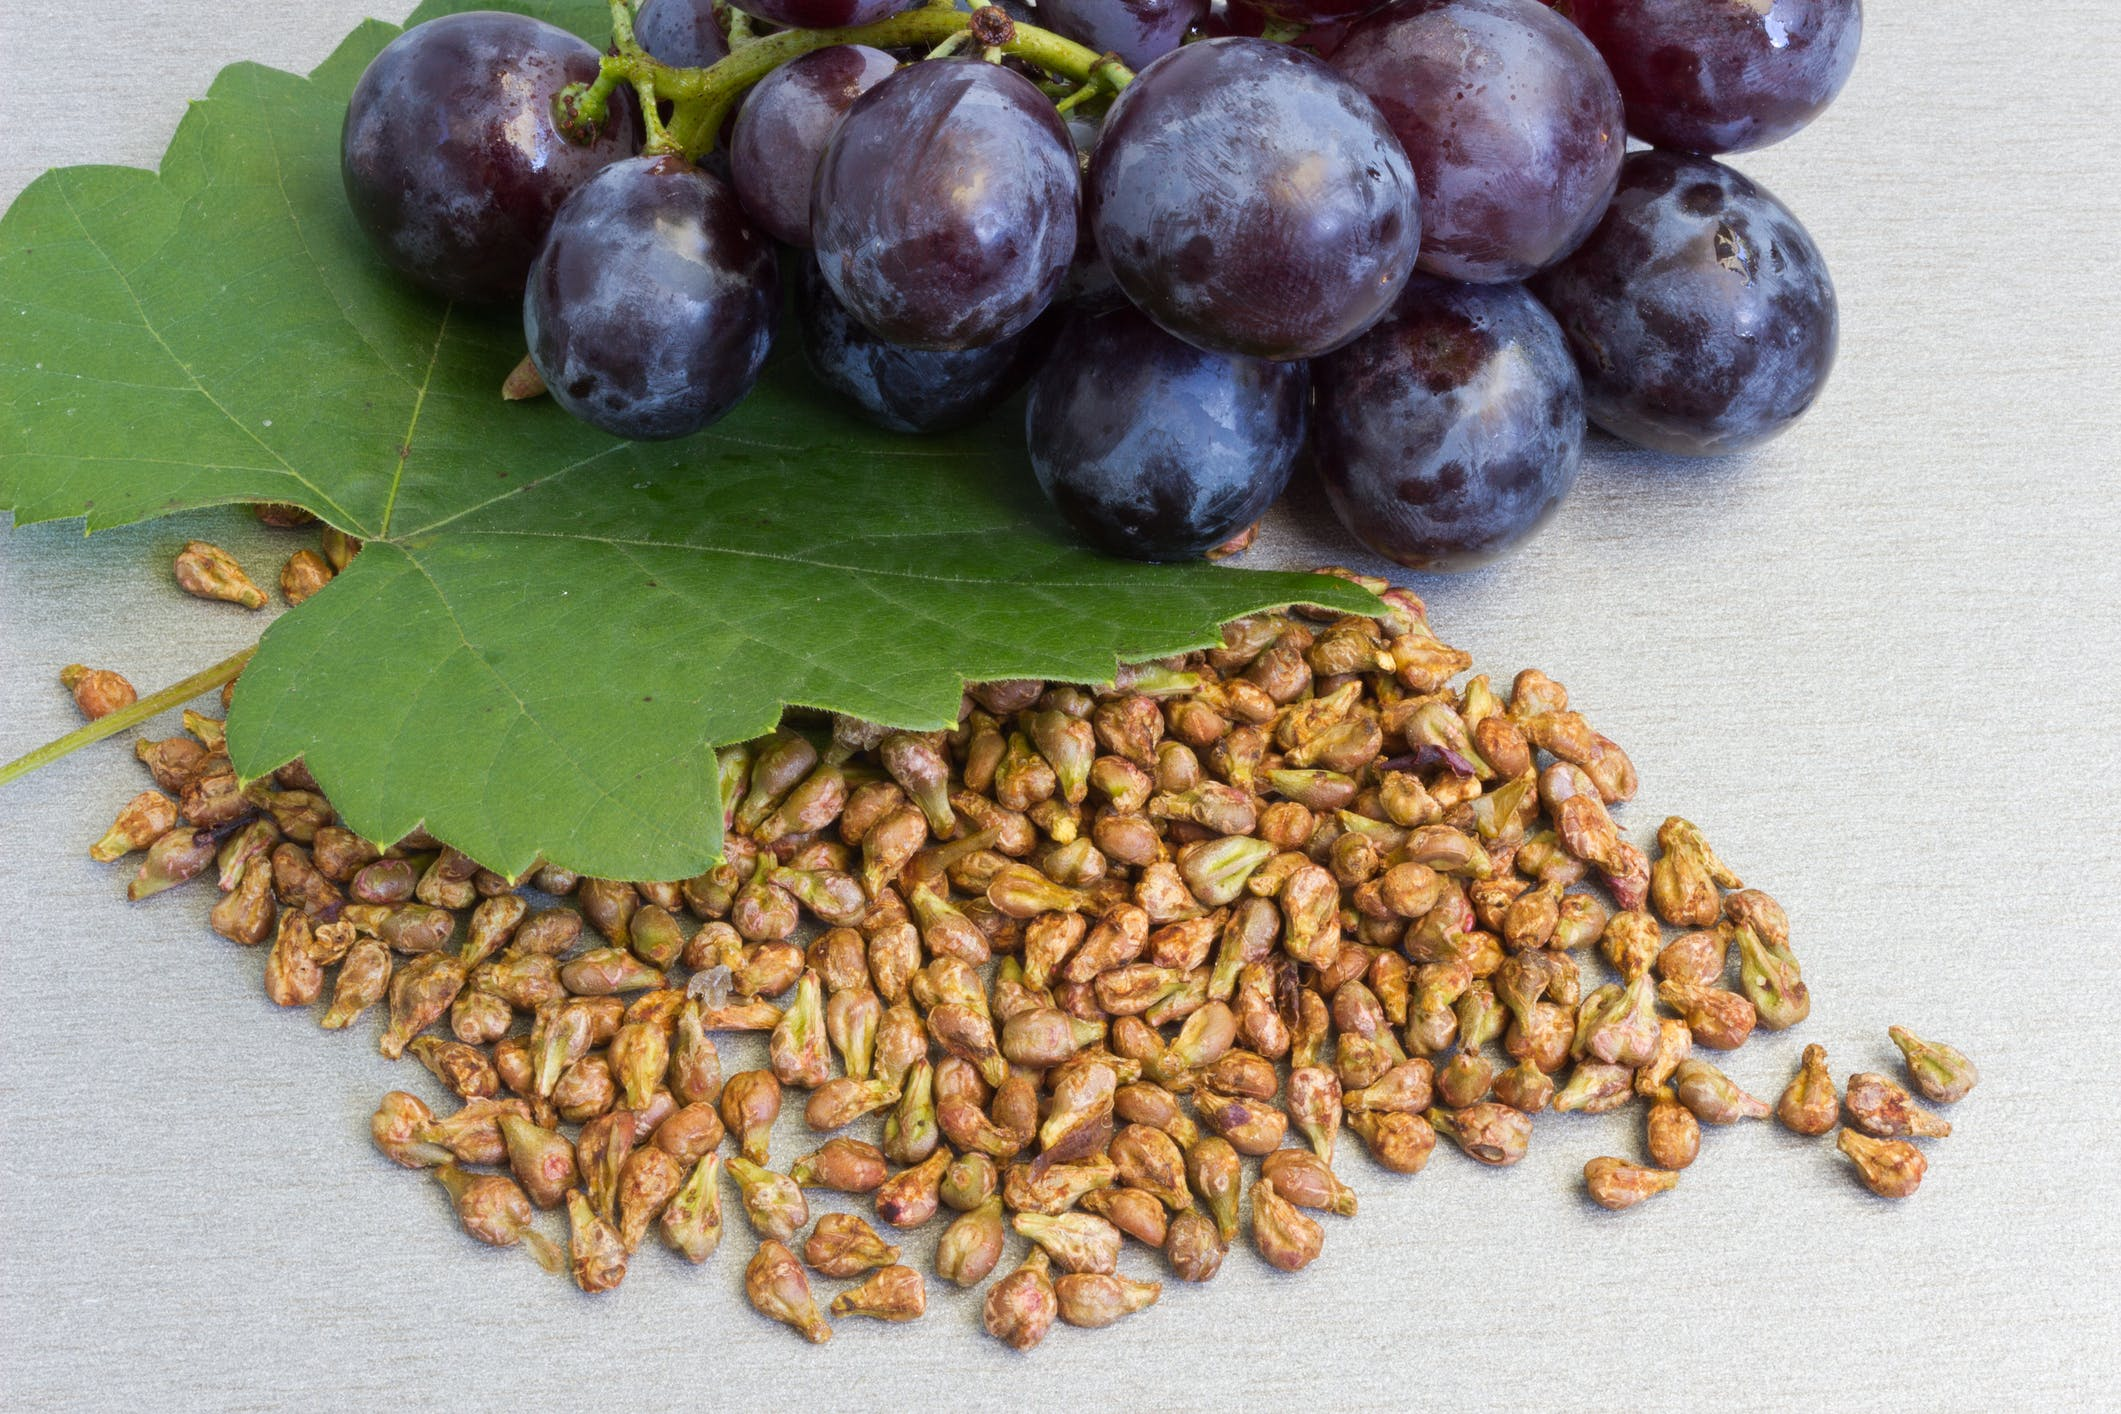 Can Grape Seeds Relieve Pain?